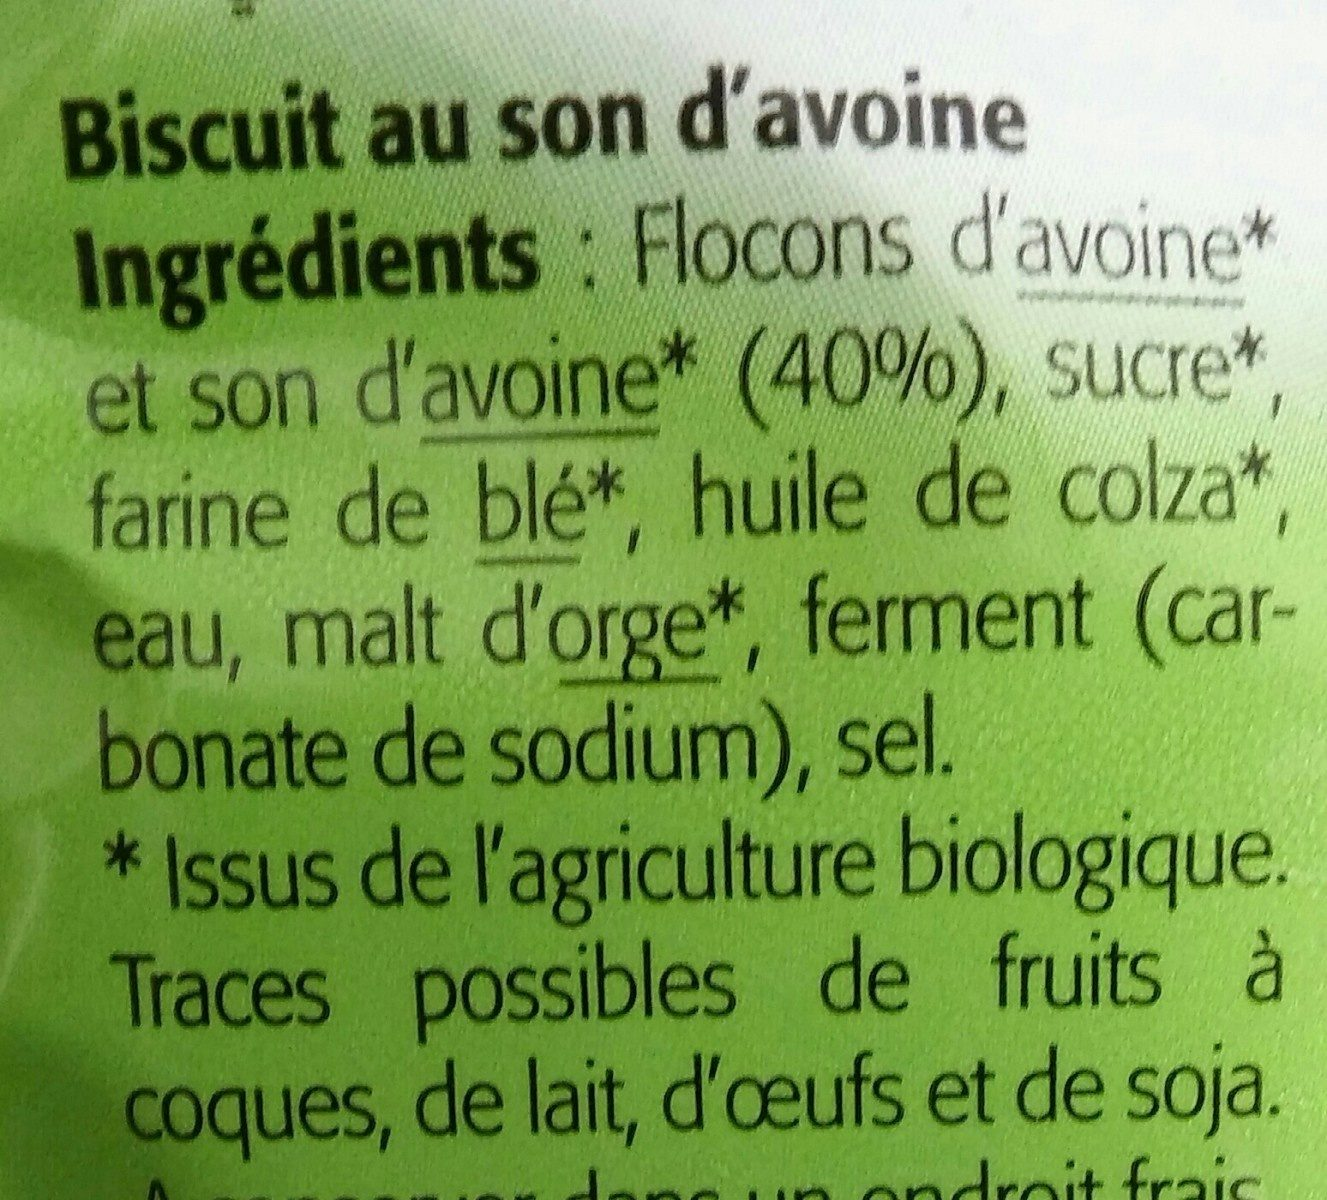 Biscuits Au Son d'avoine - Ingrédients